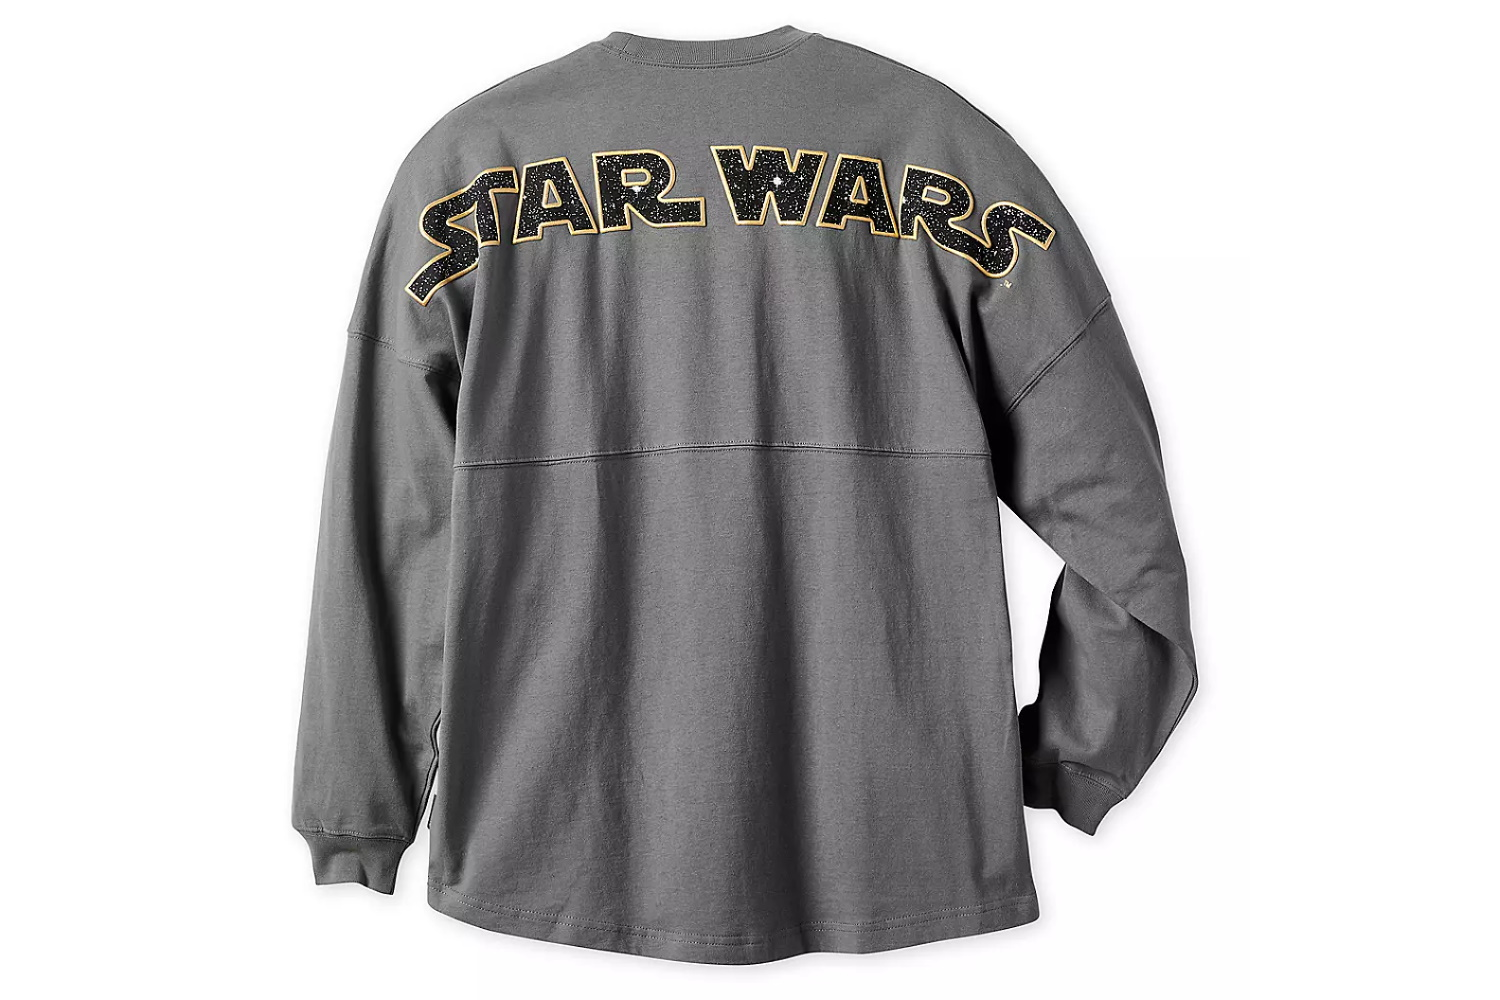 Star Wars Spirit Jersey at Shop Disney